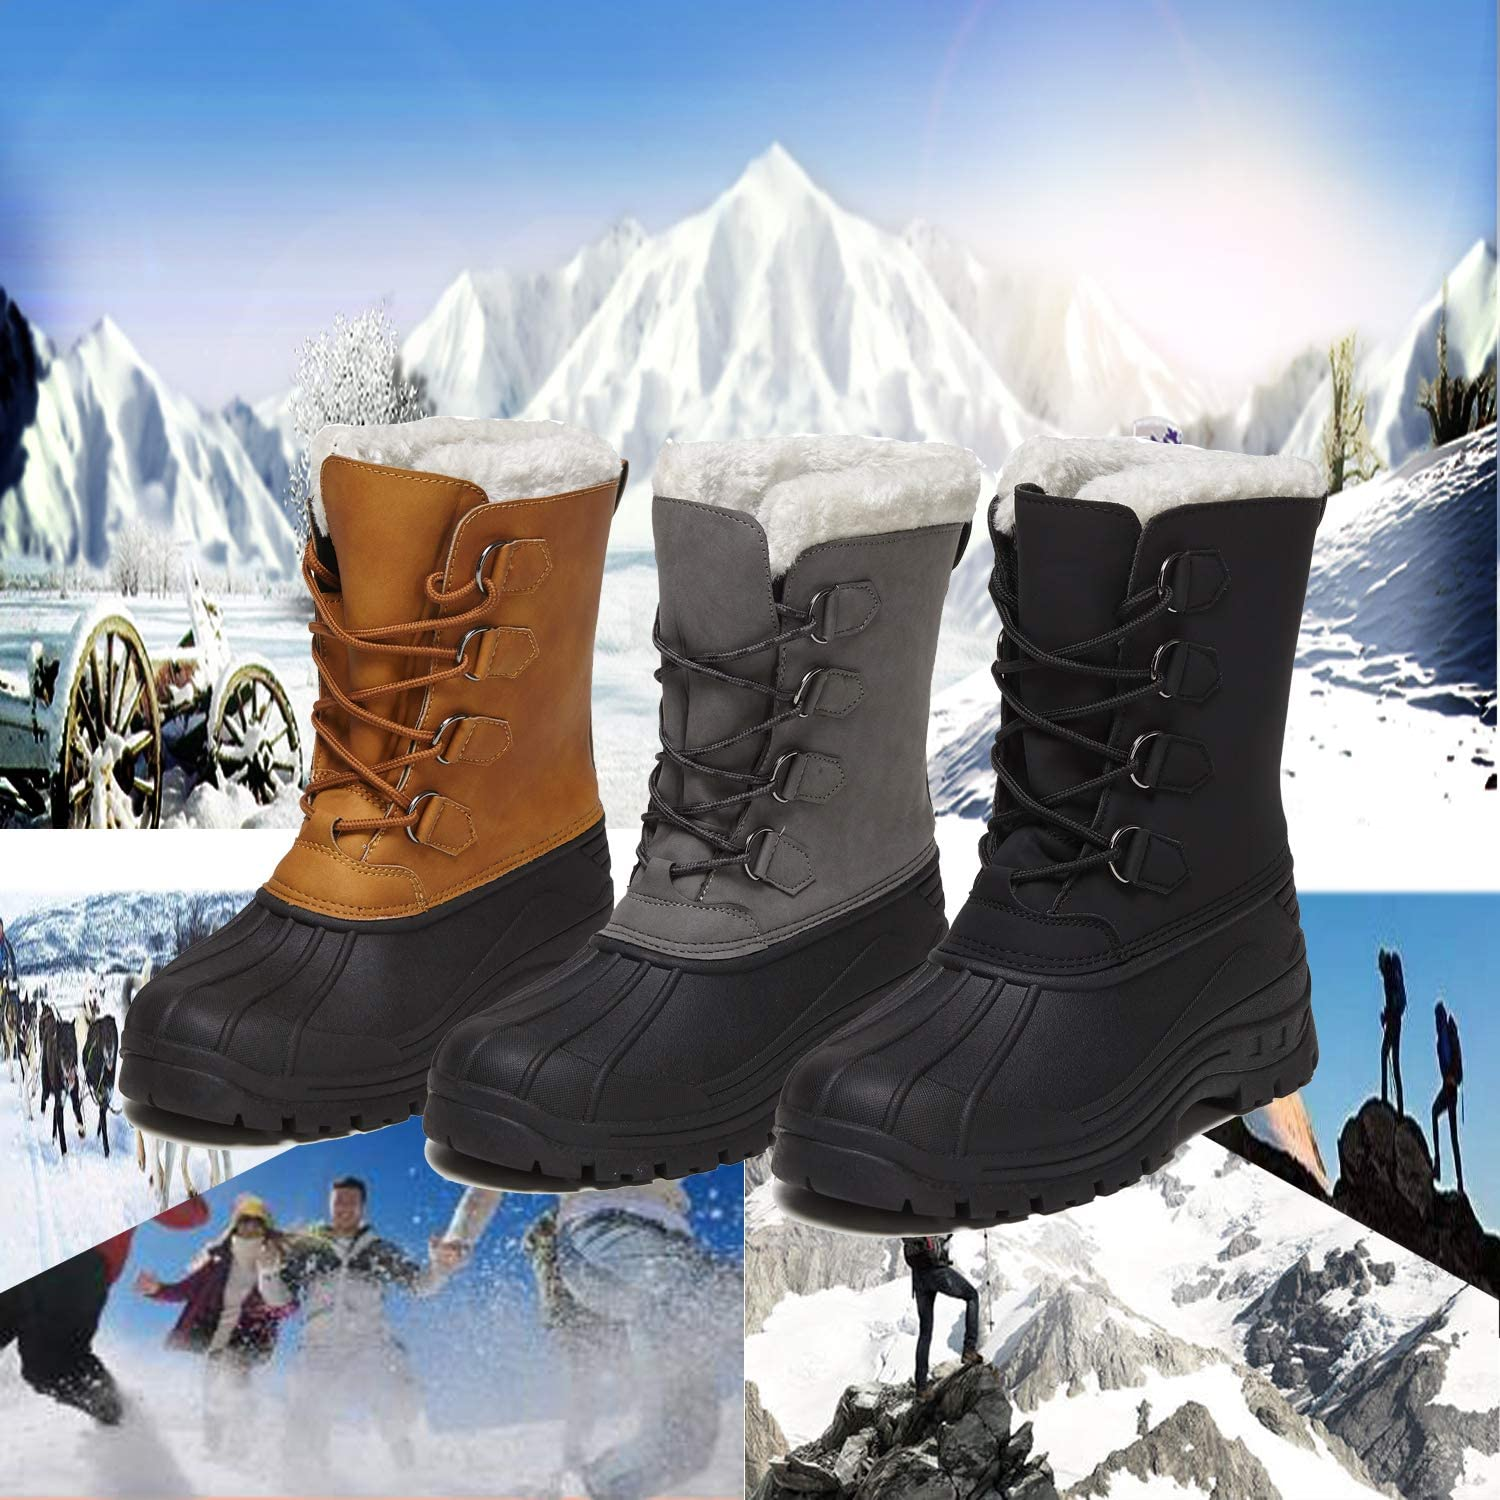 Owarrla Winter Snow Boots Waterproof Mens Anti-Slip Warm Fur Winter Boots Lace-up Shoes for Outdoor Indoor